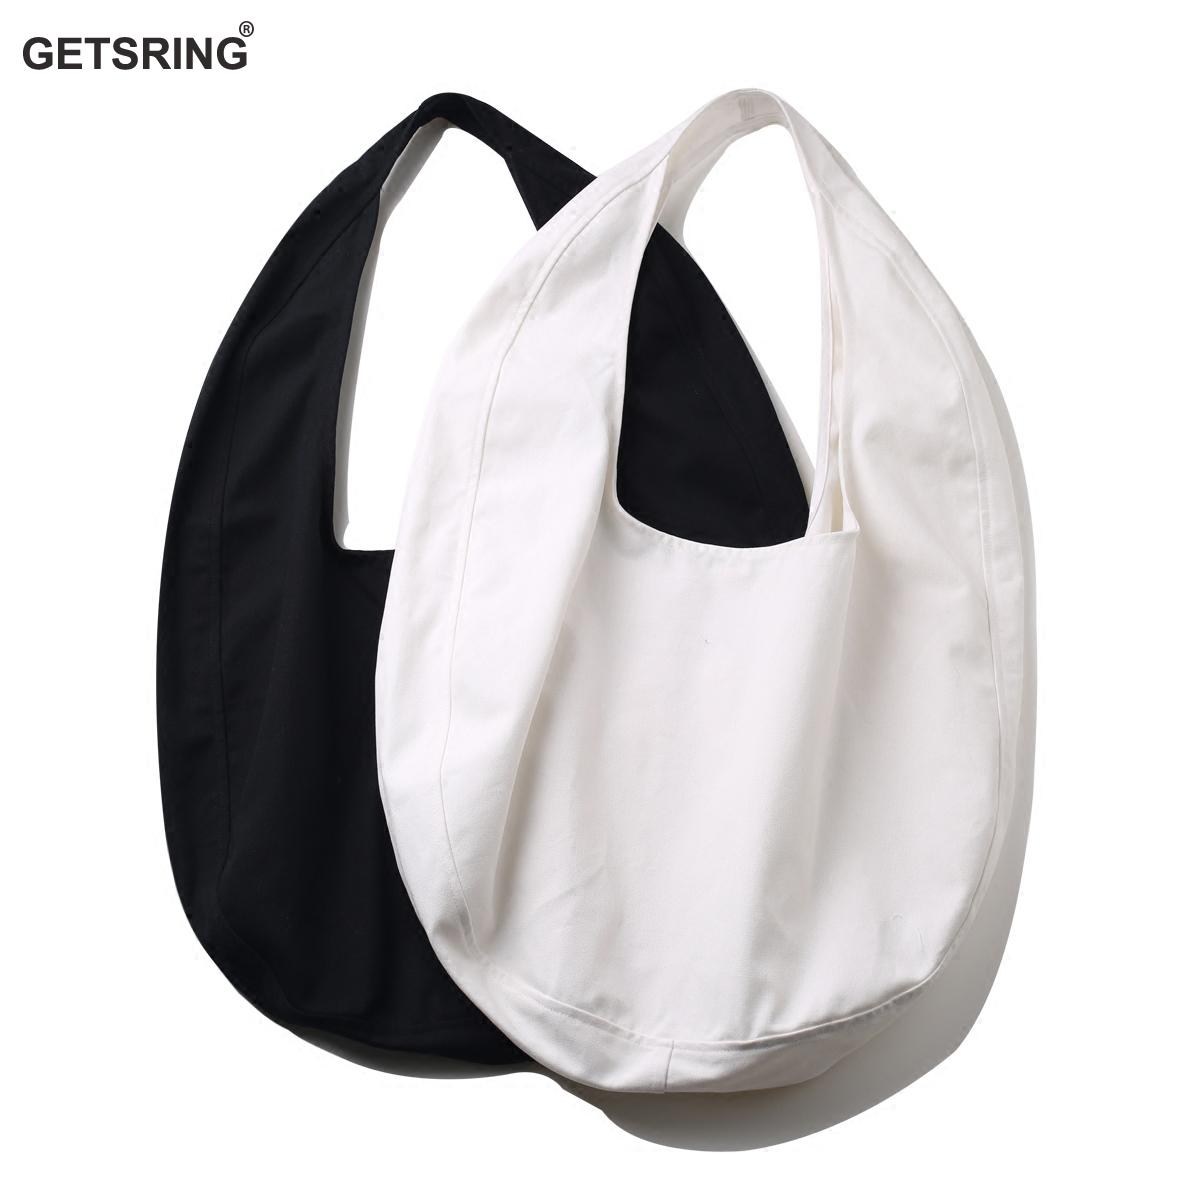 GETSRING Women Bag Handbag Cotton Canvas Bags Large Capacity Round Outline Single Shoulder Bag Casual Vintage